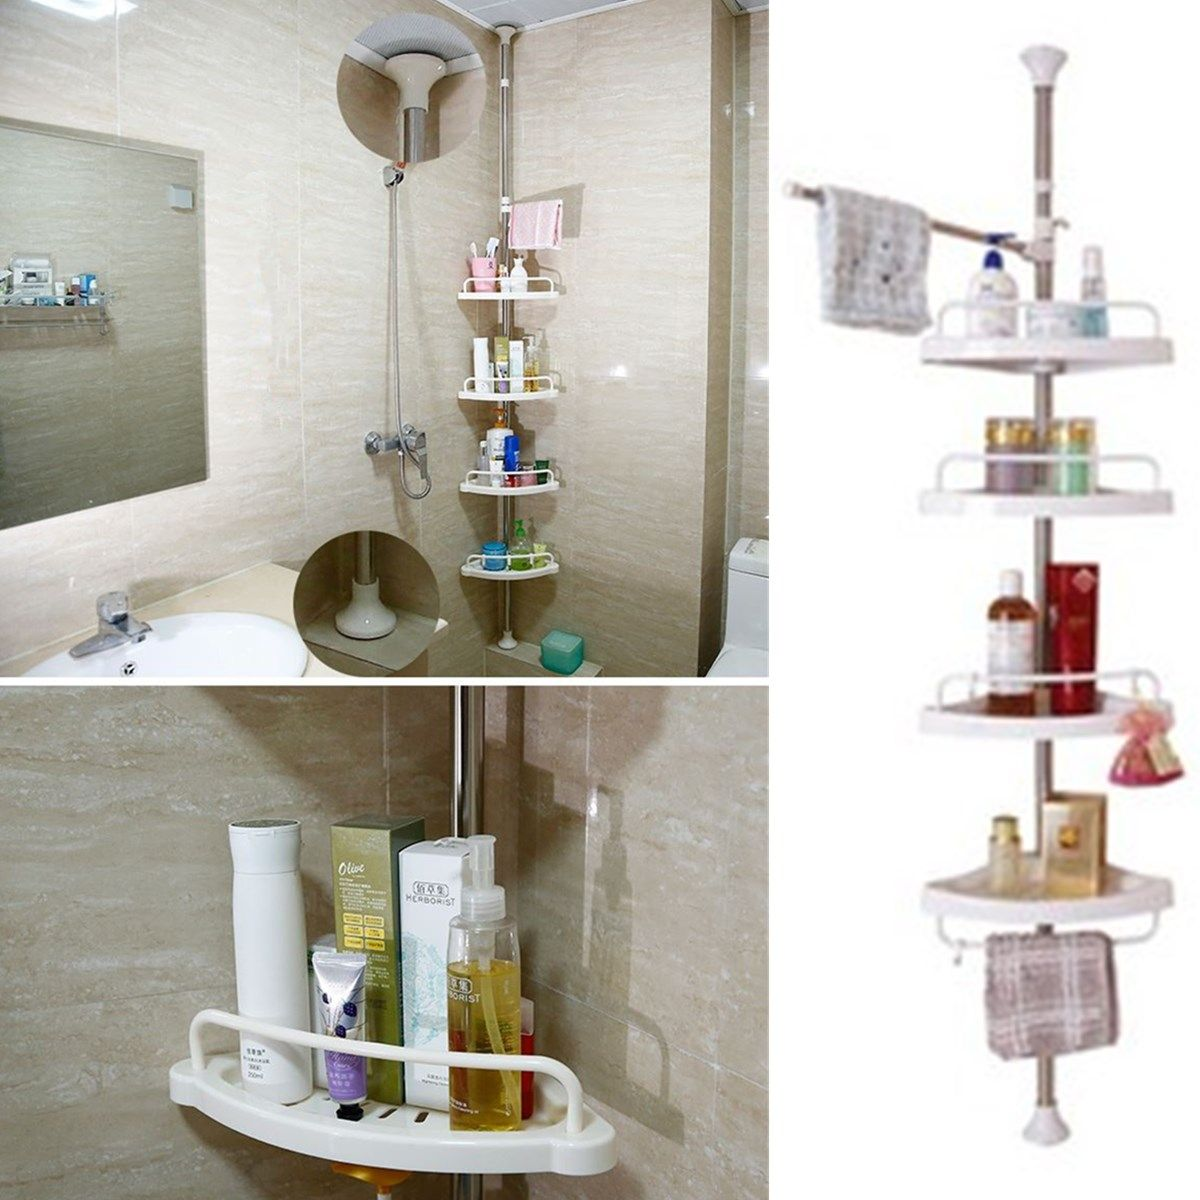 Amazing Corner Shower Shelves Hall Bedding Sprinklers Kitchen Backsplash Style Expansive